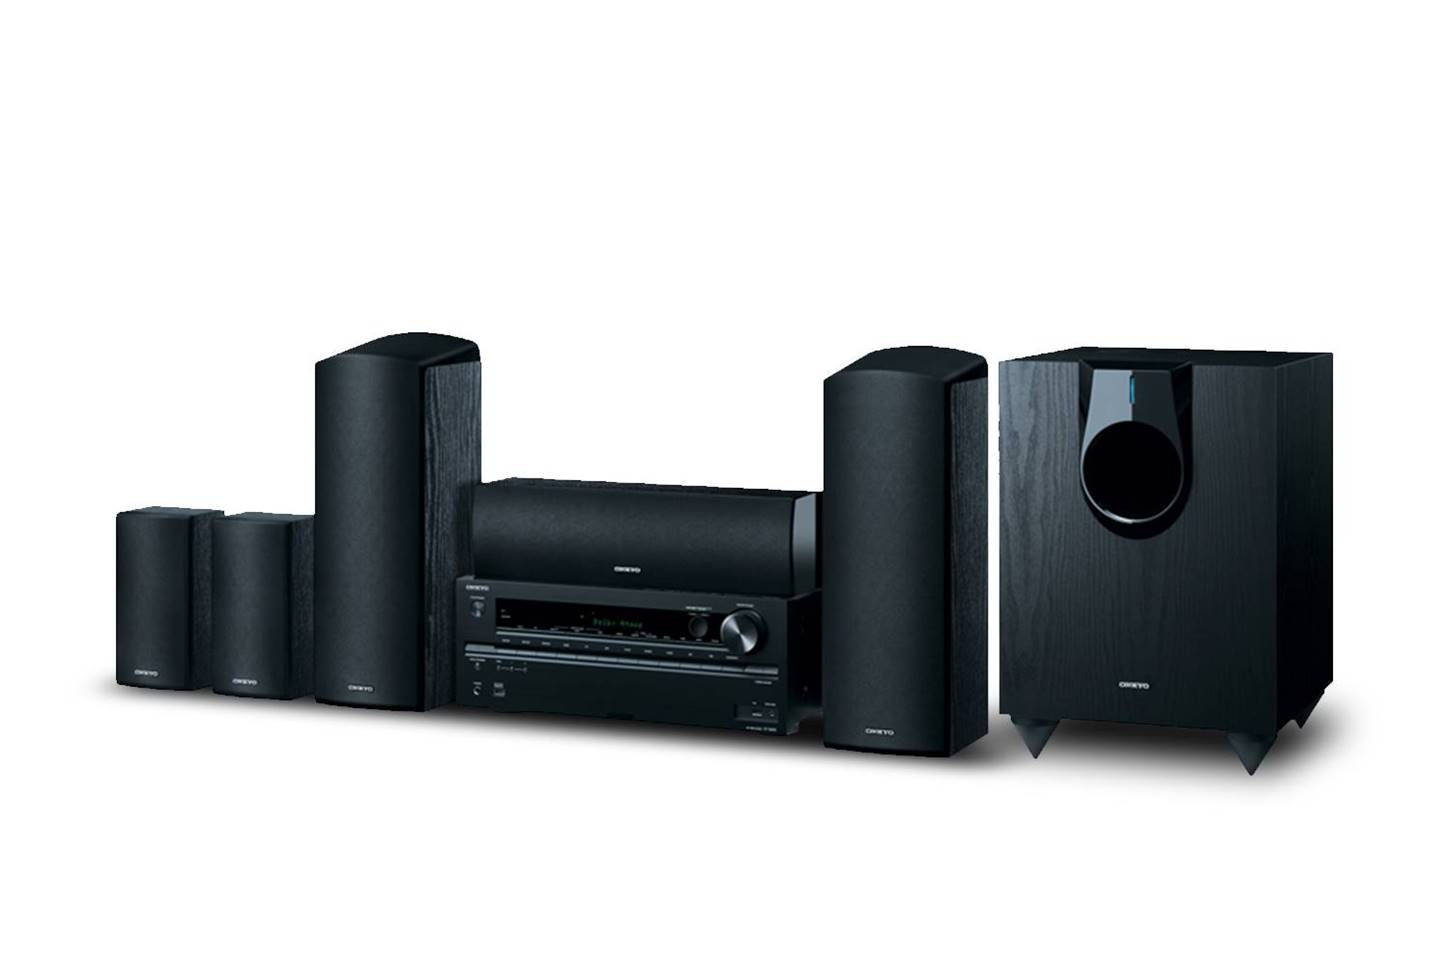 Onkyo HT-S5800 5.1.2 Channel Dolby Atmos Speakers